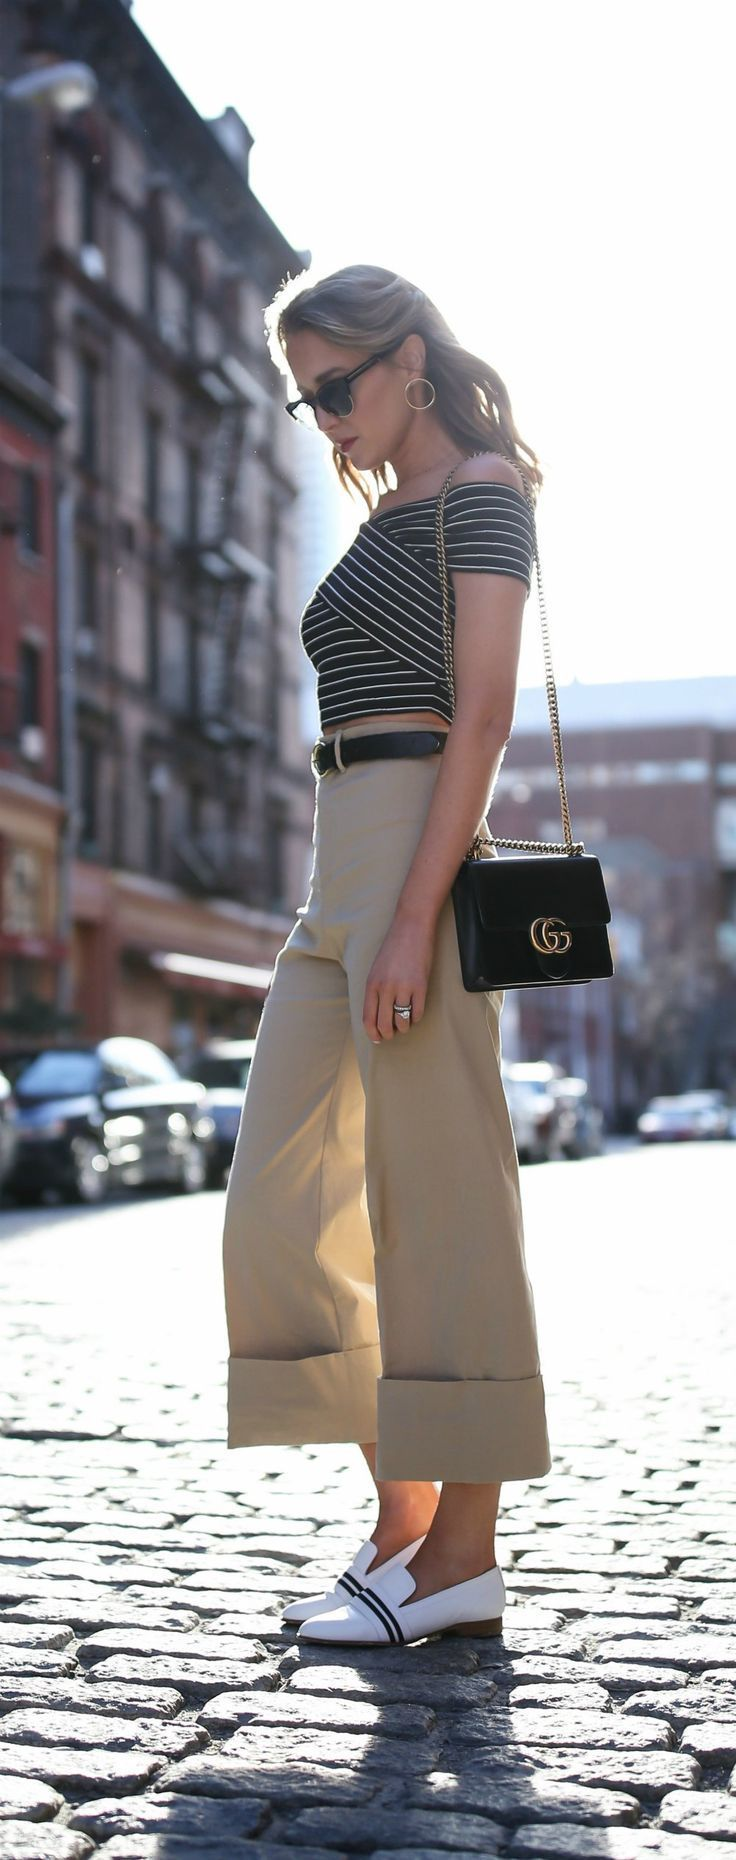 Top 10 Spring Trends to Know // How to Wear Trend #7: Khaki // click the image for all the details! // khaki wide-leg cuffed culotte trousers, white loafers with striped ribbon detail, black and white stripe criss-cross off-the-shoulder crop top, black waist belt, gucci gg bag {spring fashion, style, rag and bone, sea}